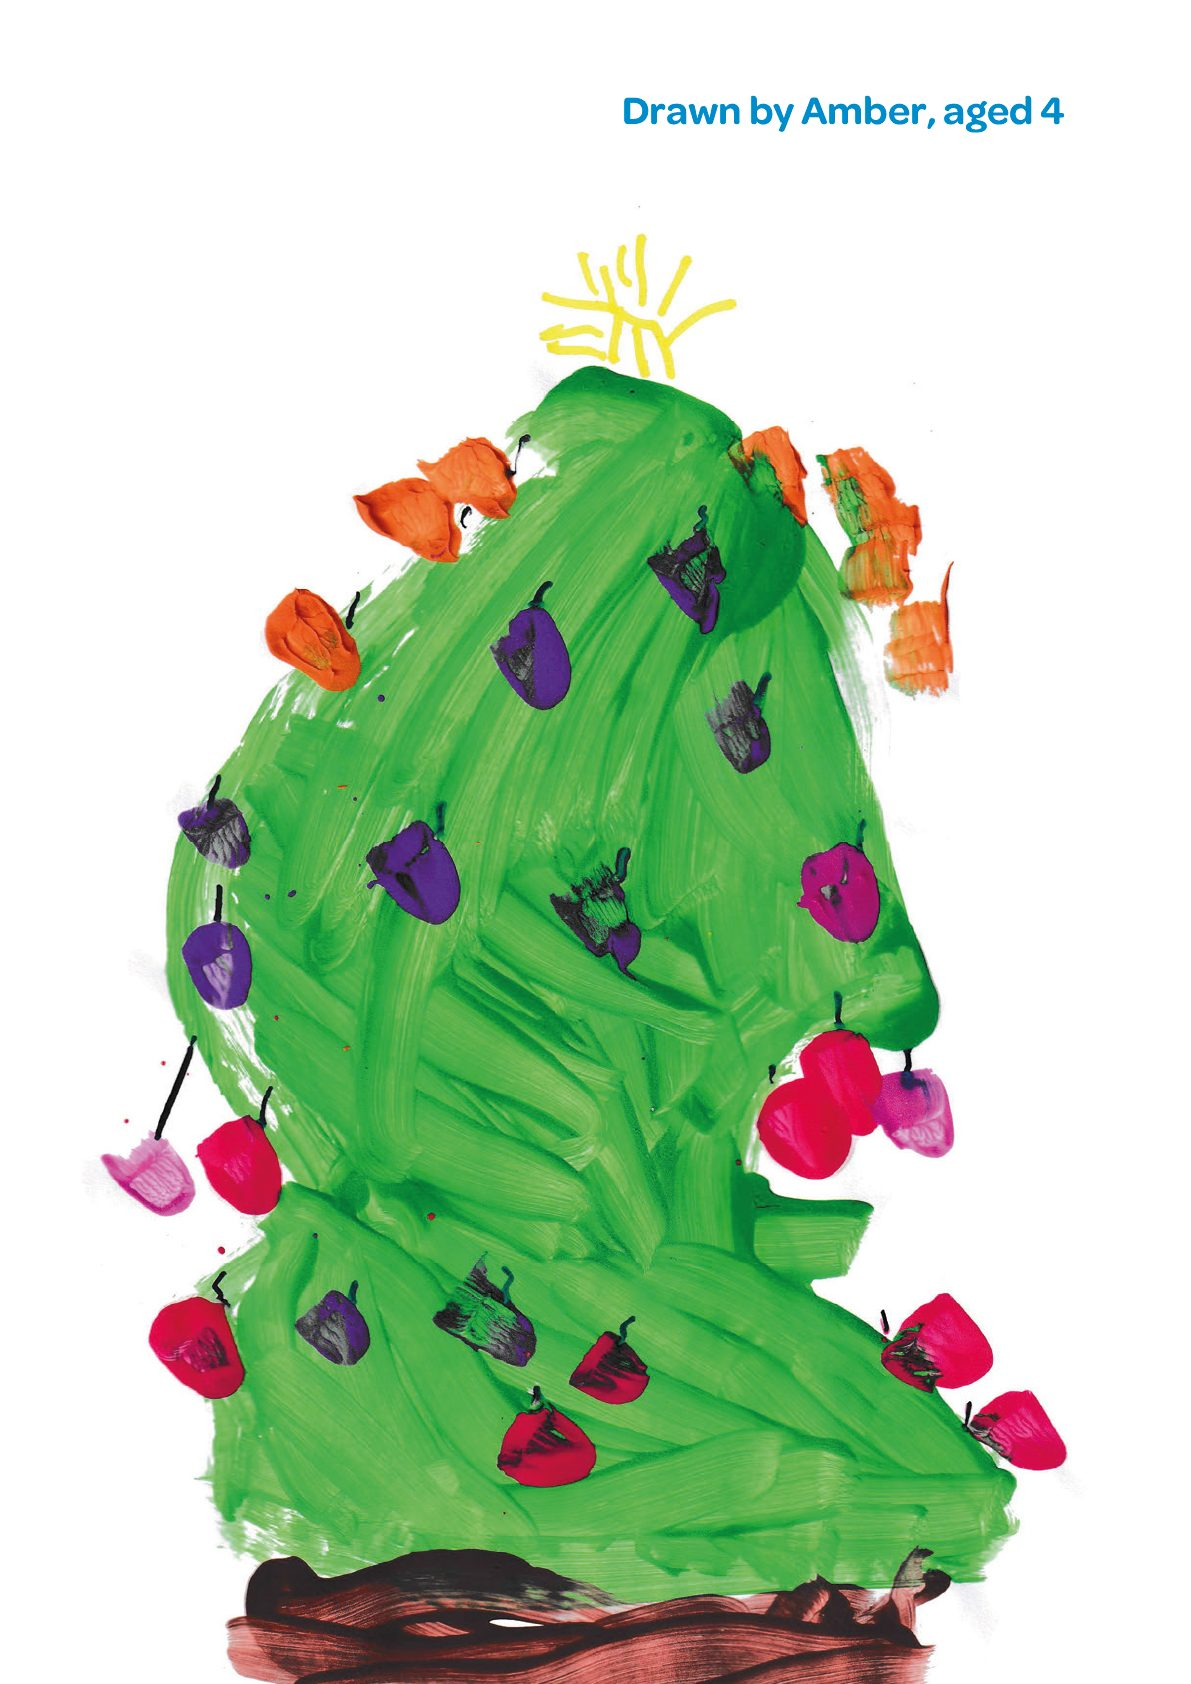 A painting of a Christmas tree by Amber age 4